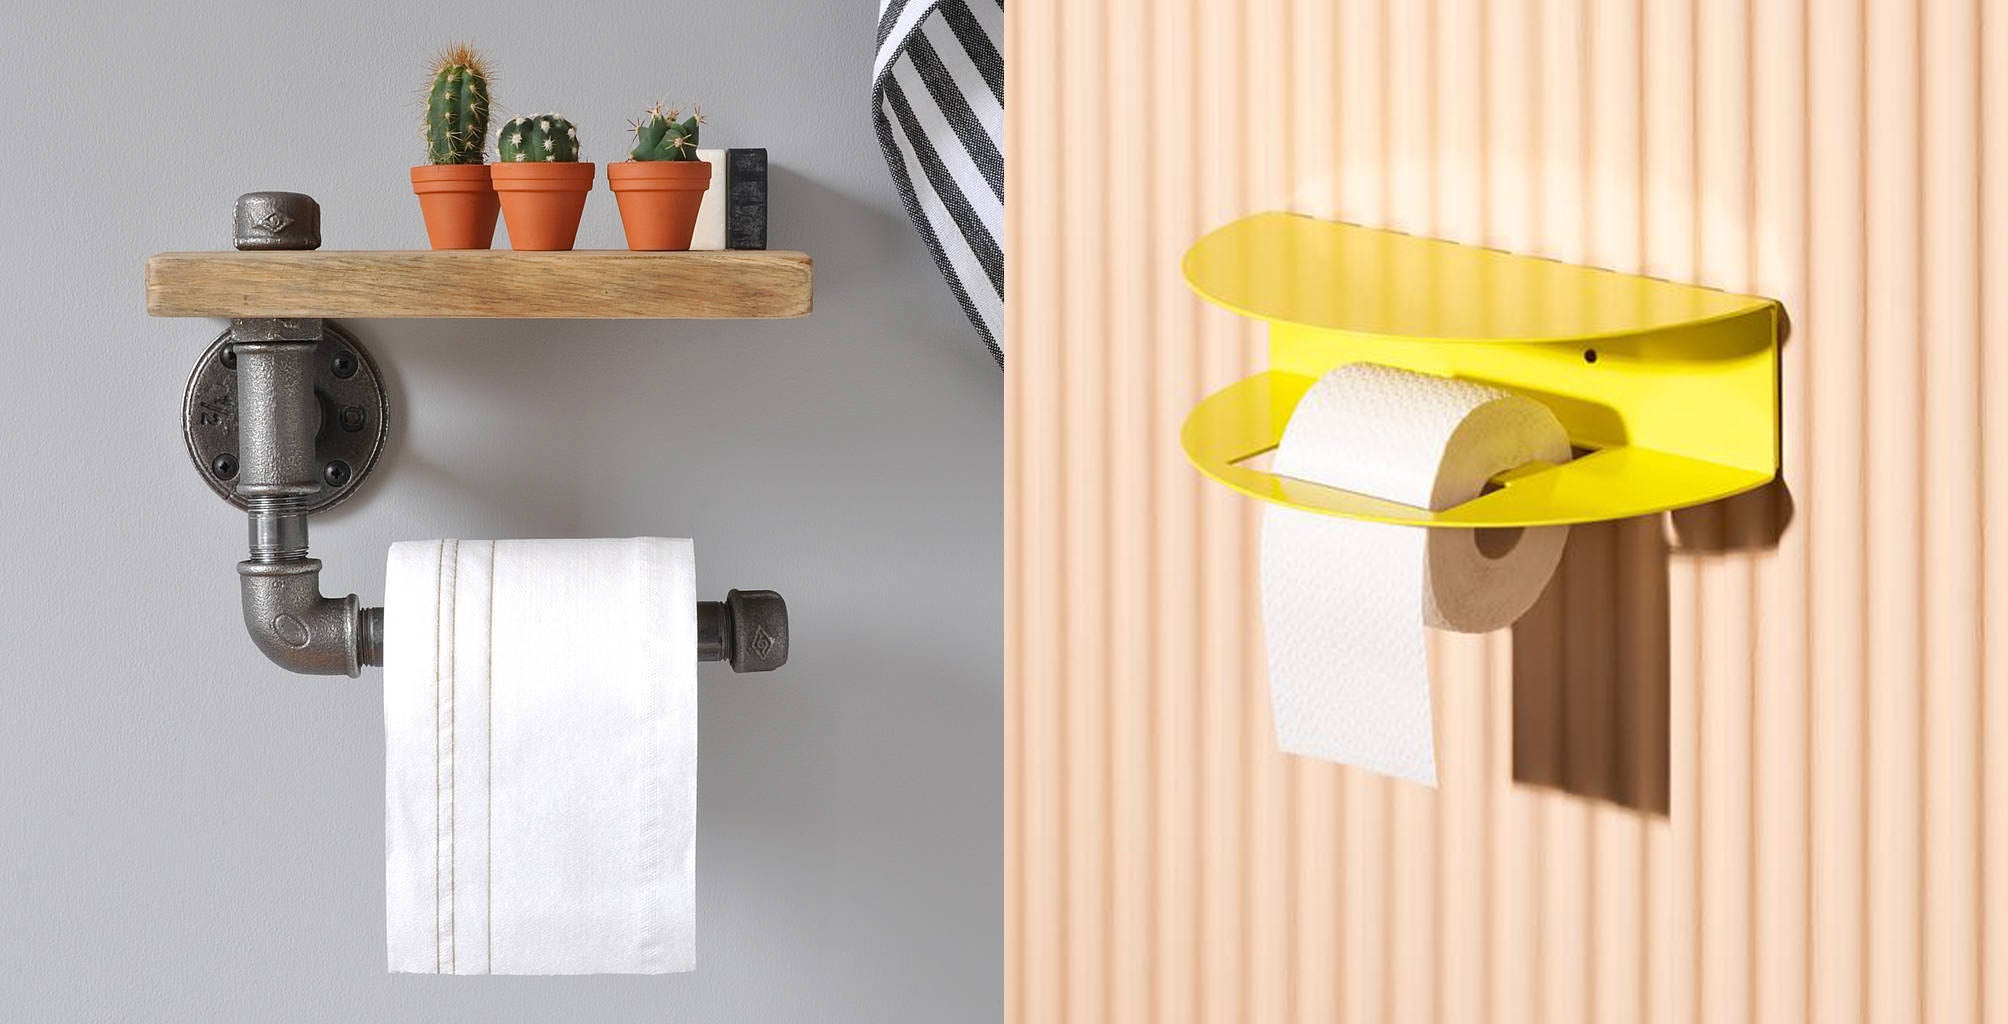 Toilet roll holder shelf